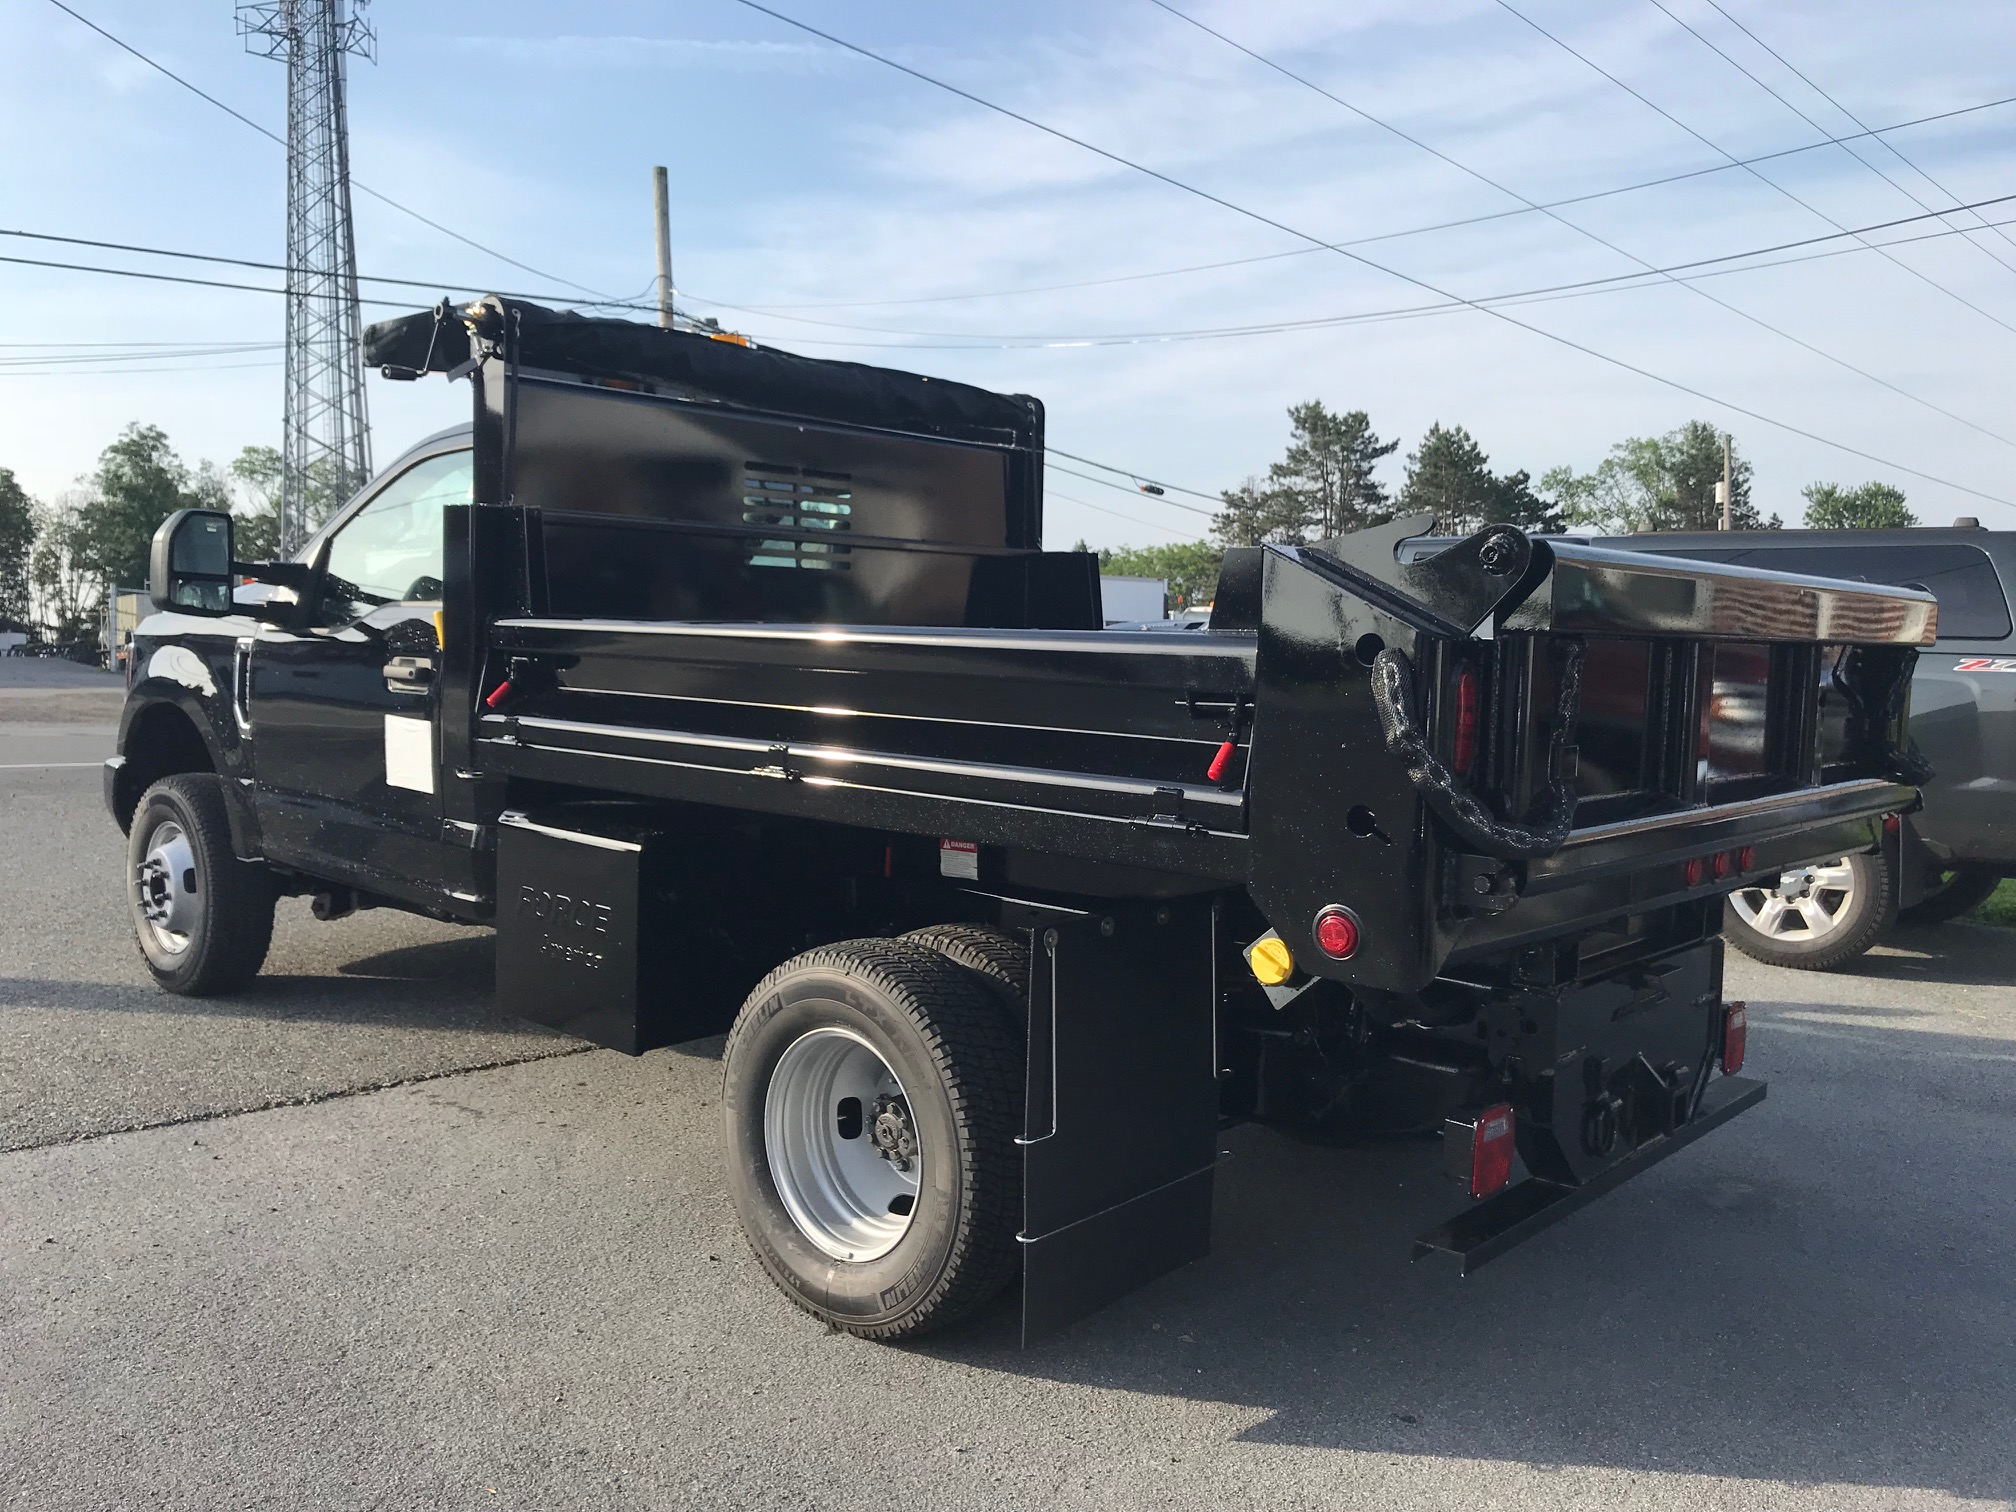 side of black dump truck parked on pavement